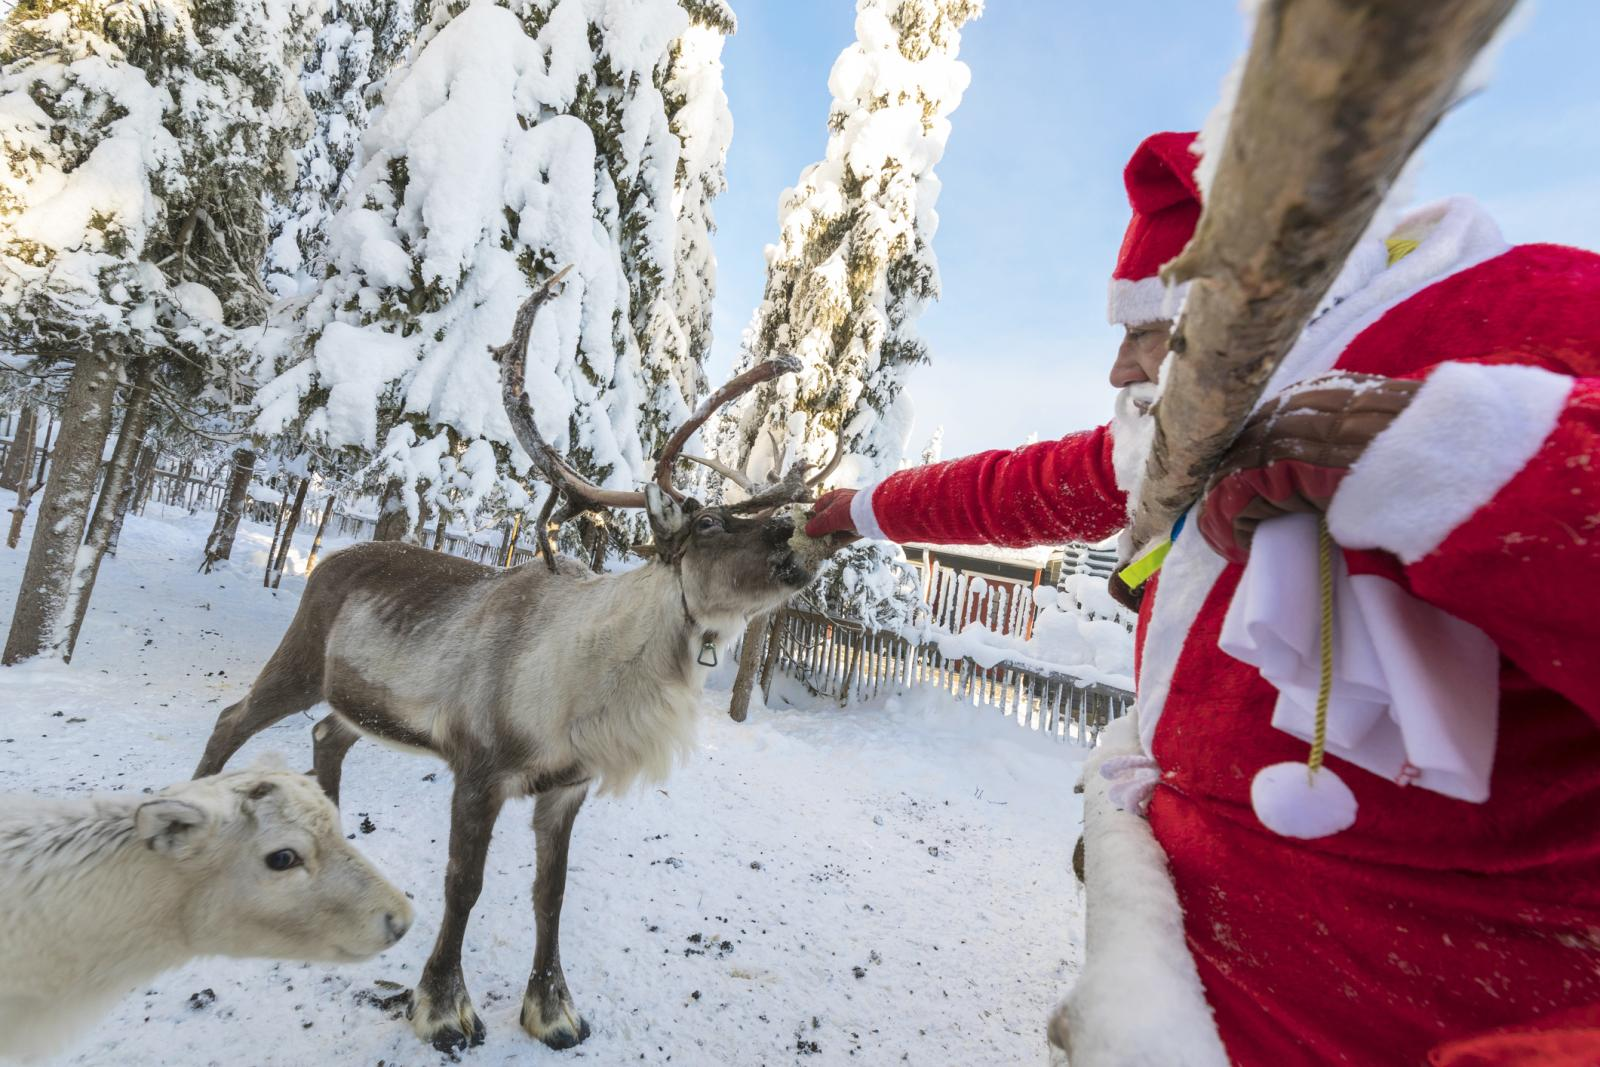 Santa Claus feeding reindeer in the snowy forest